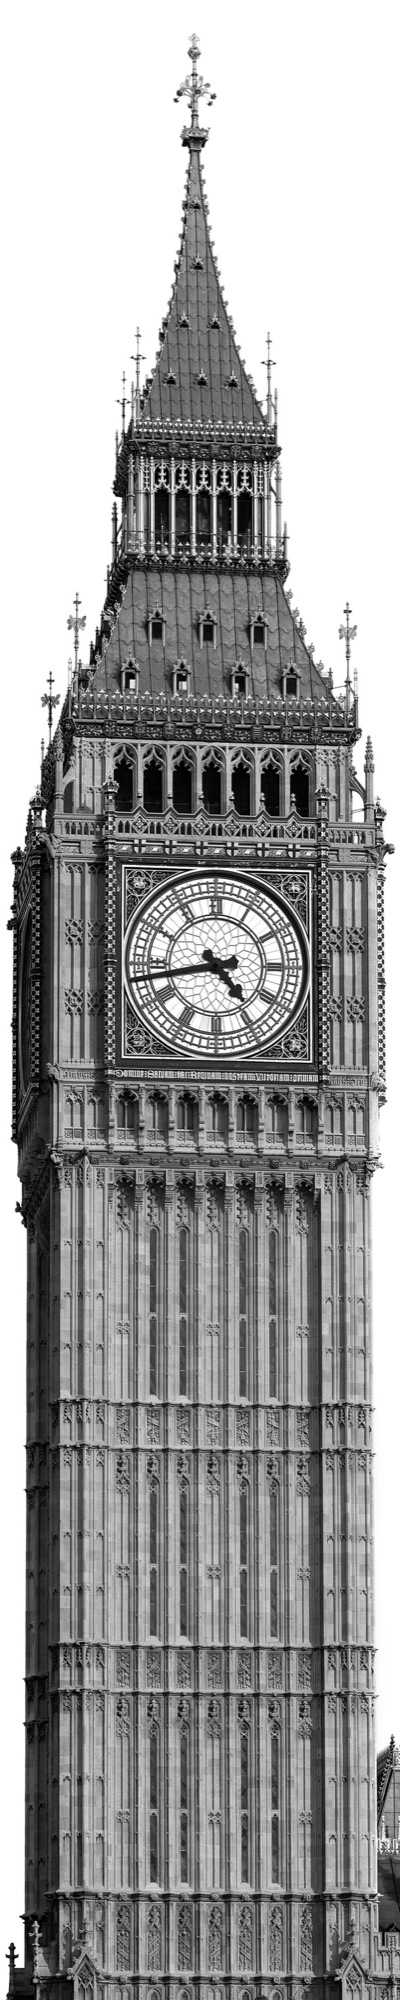 Digital wallpaper Big Ben